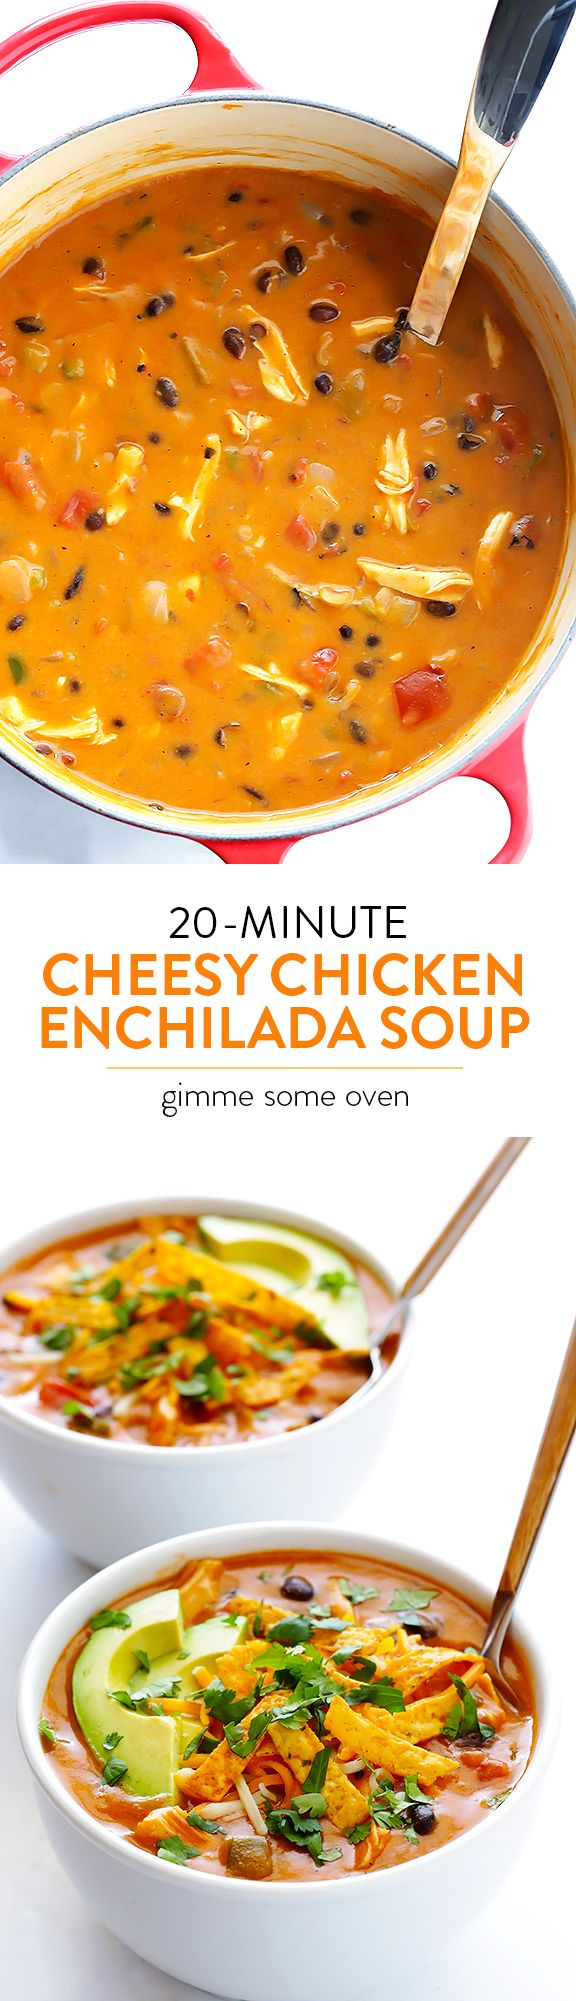 This delicious and flavorful soup is super-easy to make, and it's ready to go in about 20 minutes!  Even better!! | gimmesomeoven #soupson